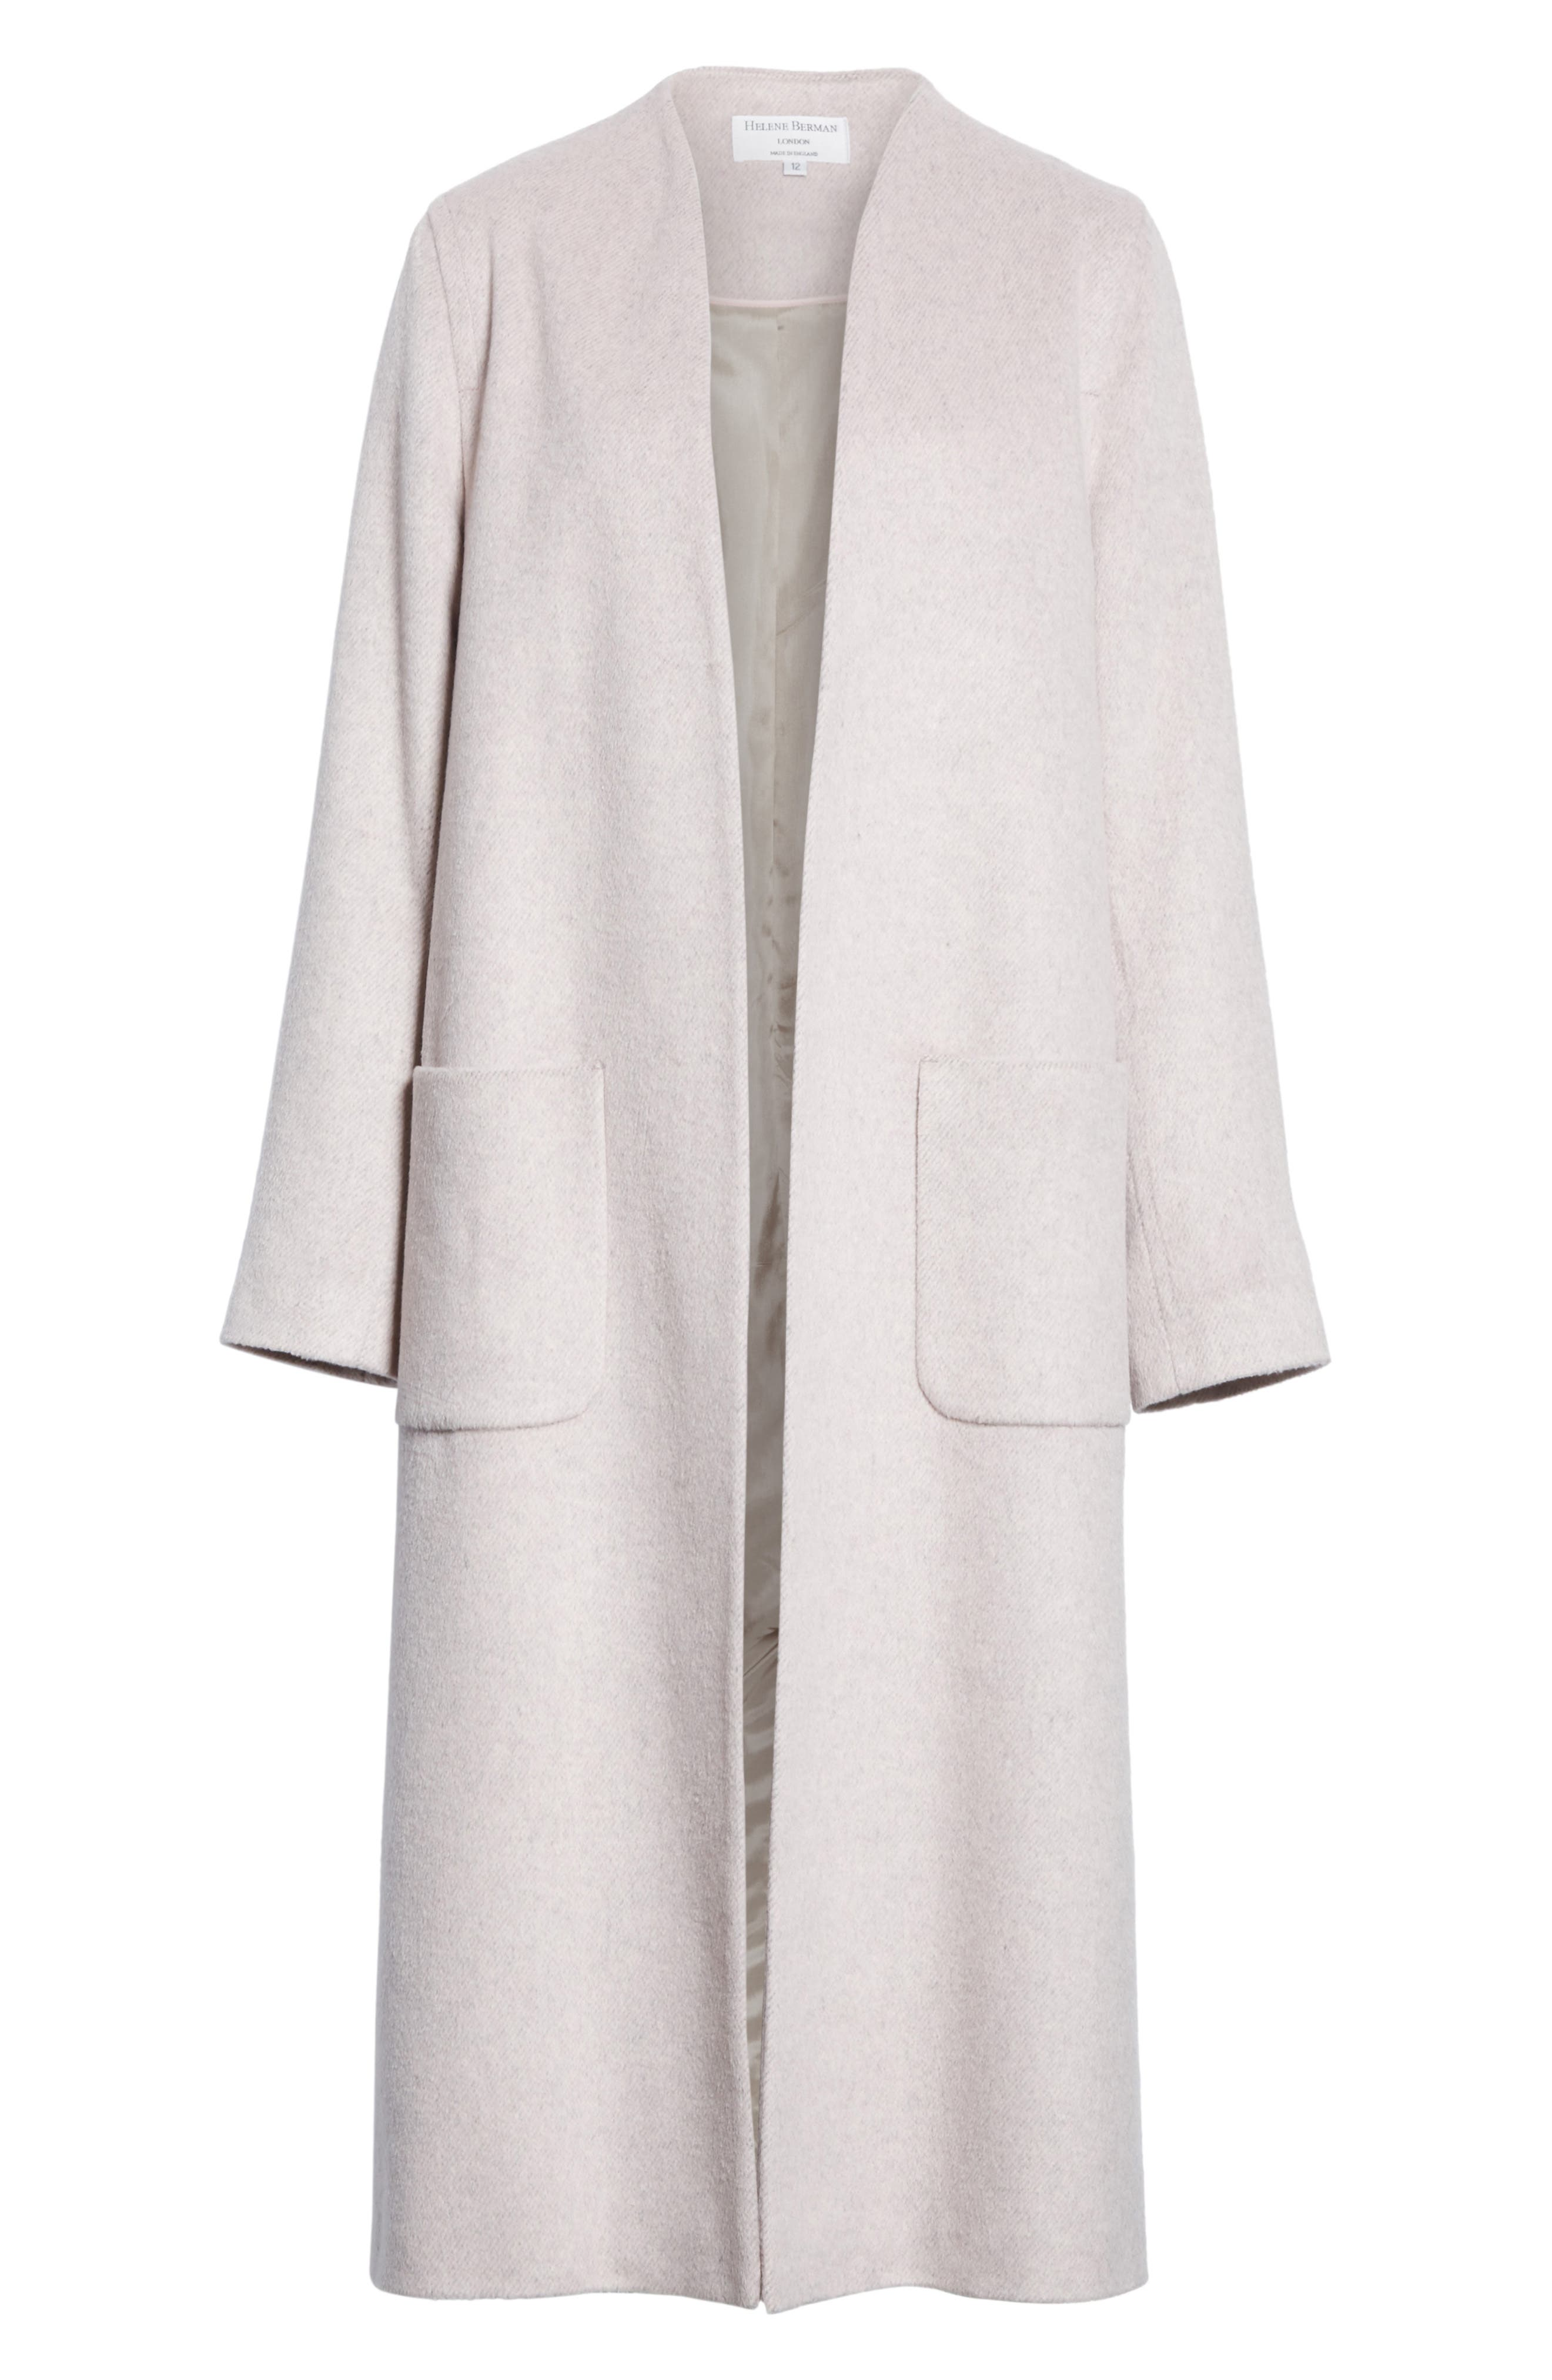 Edge to Edge Coat,                             Alternate thumbnail 6, color,                             Pale Pink